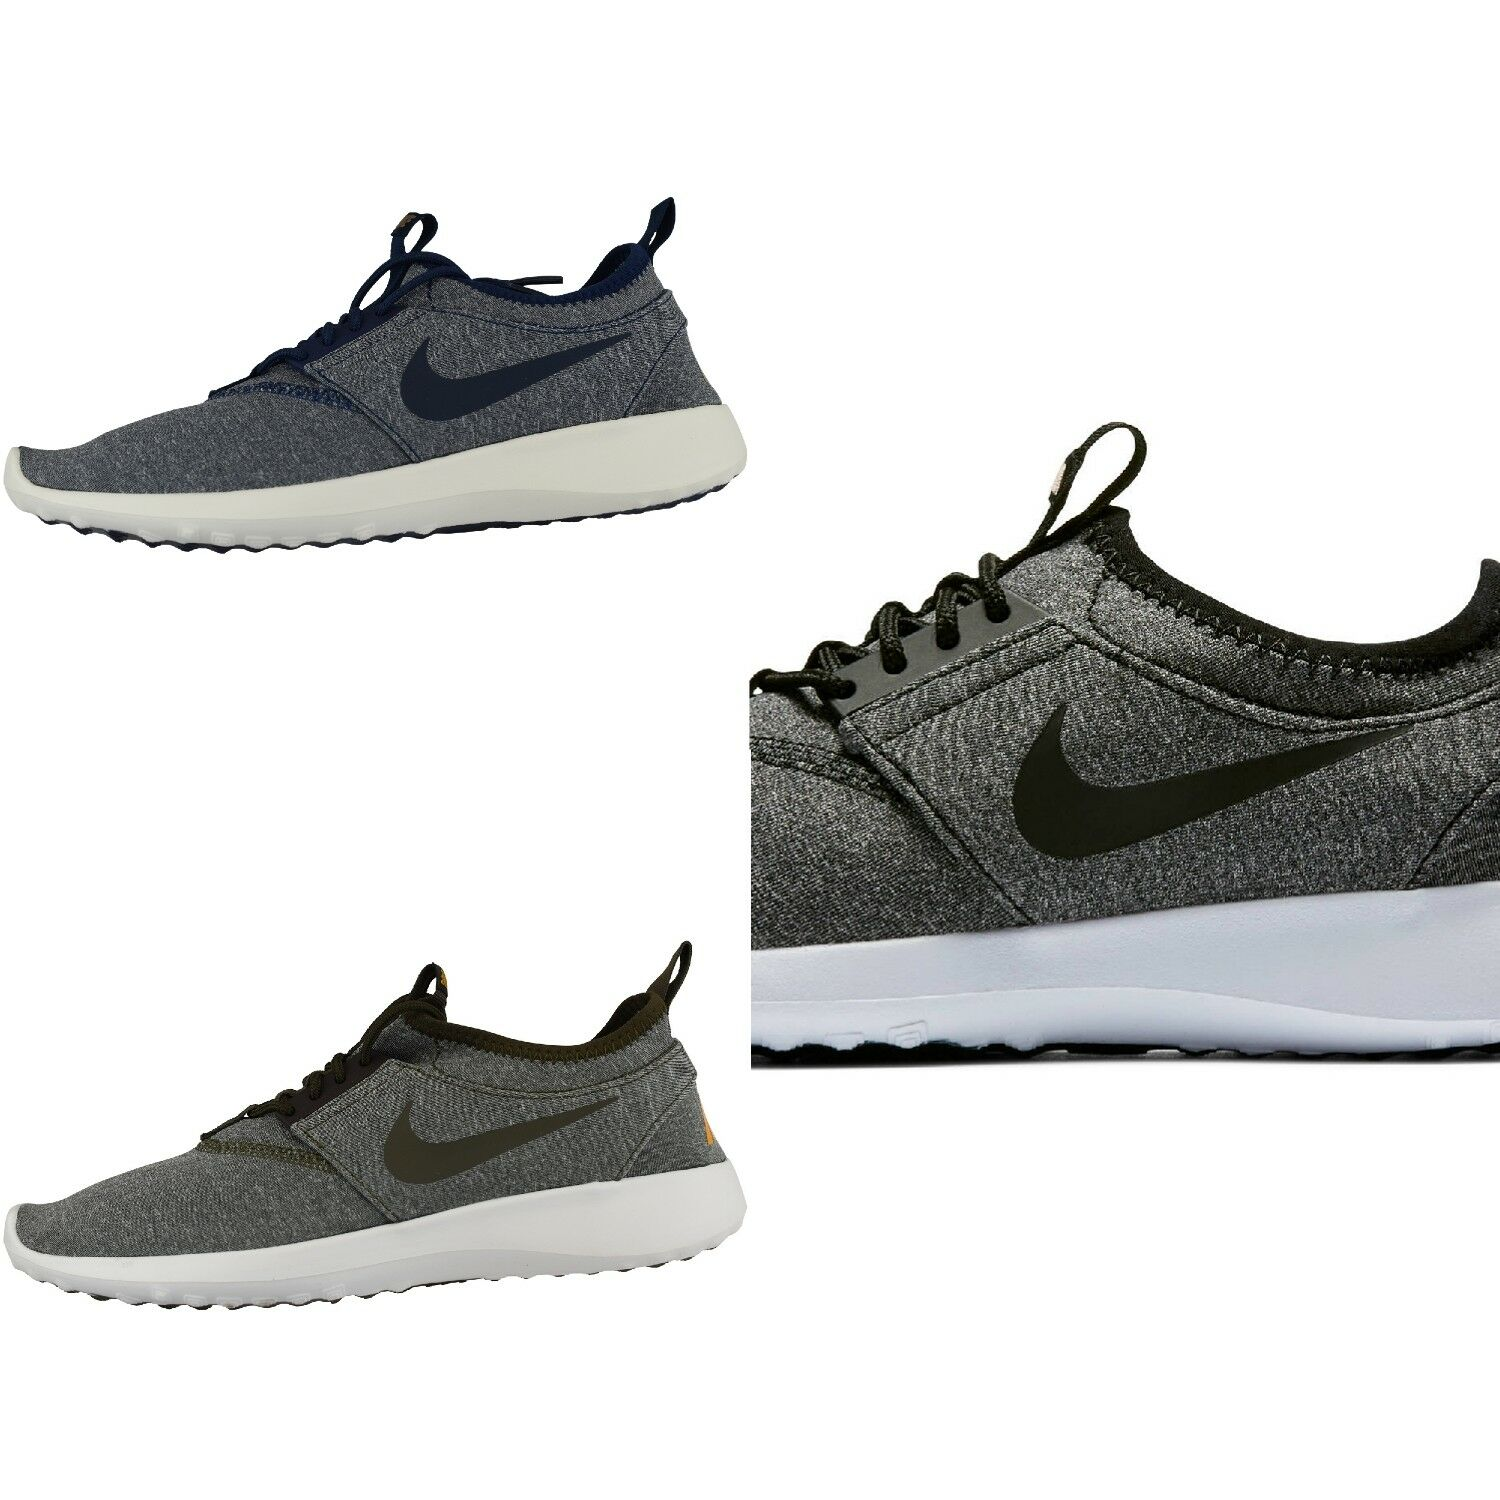 Nike Juvenate SE ( Special Edition Turnschuh ) Damsnschuh Sneaker Sportschuh Turnschuh Edition e7ec29